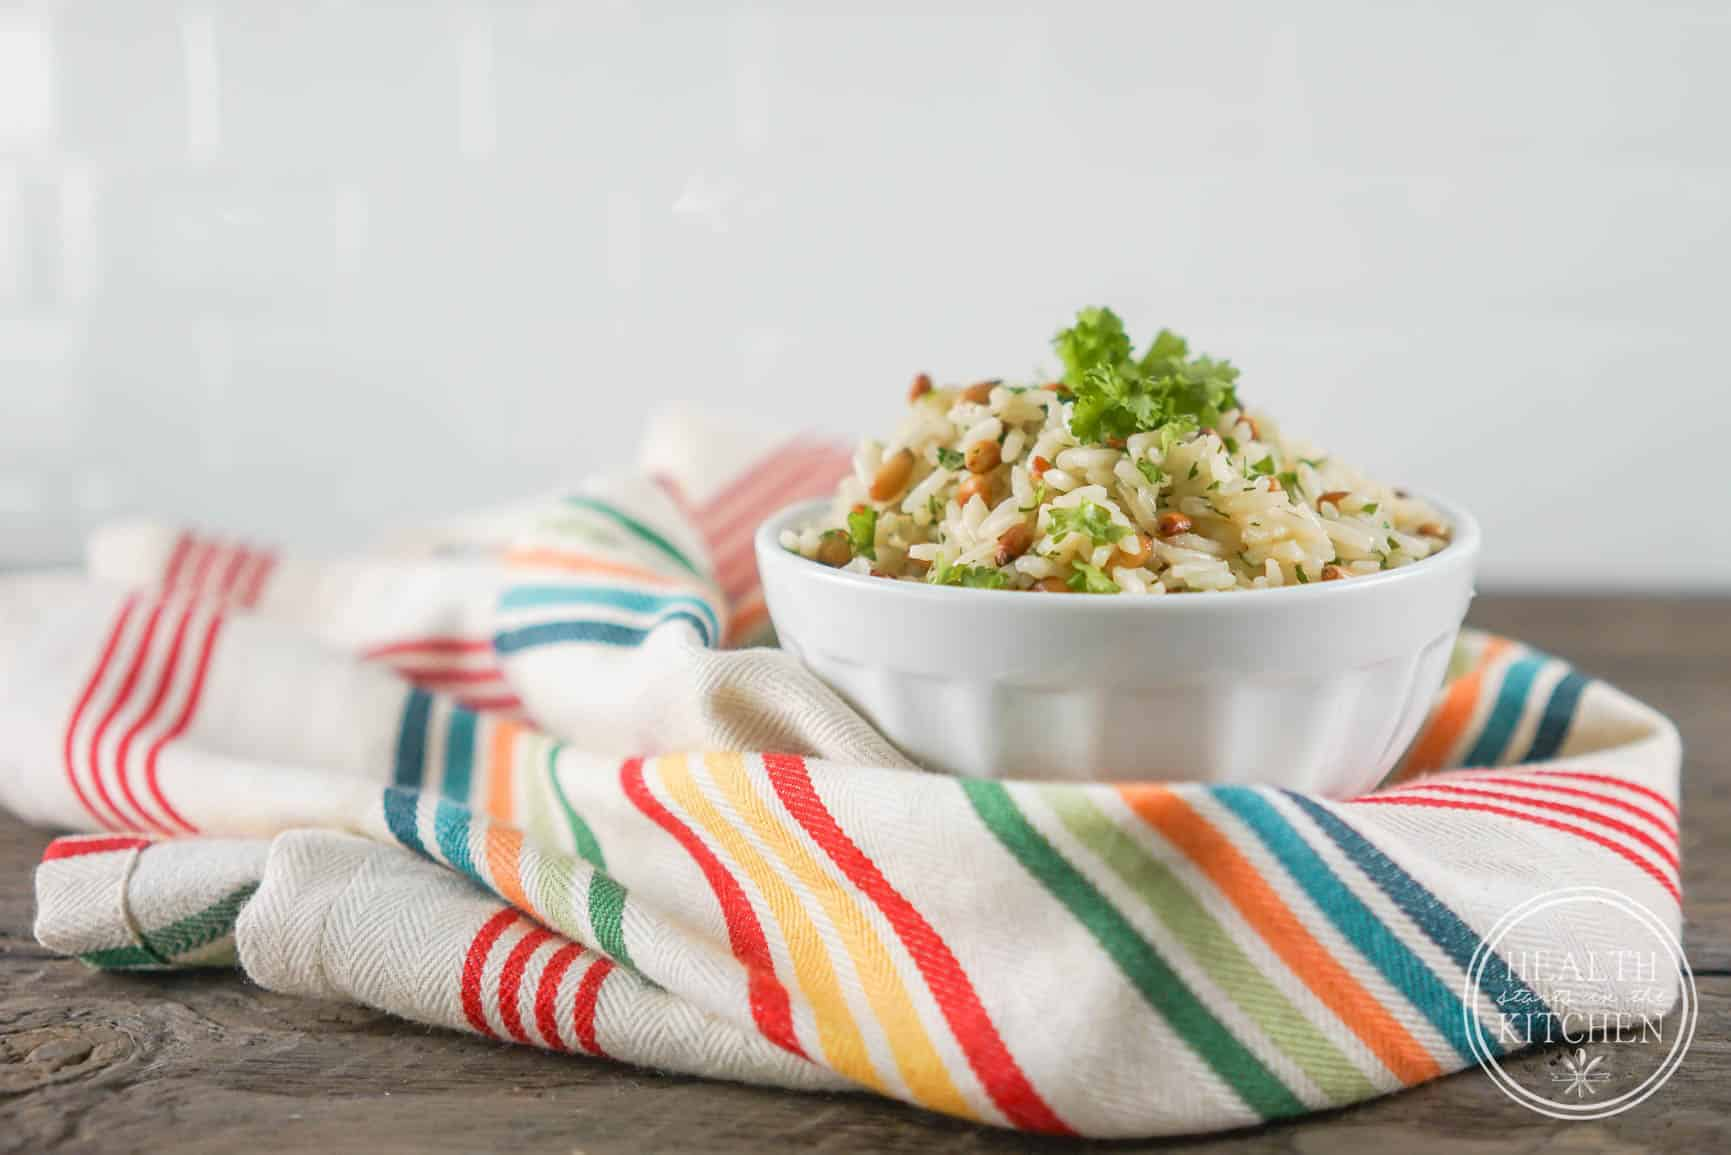 5 Minute Pressure Cooker Rice Pilaf with Pine Nuts and Parsley